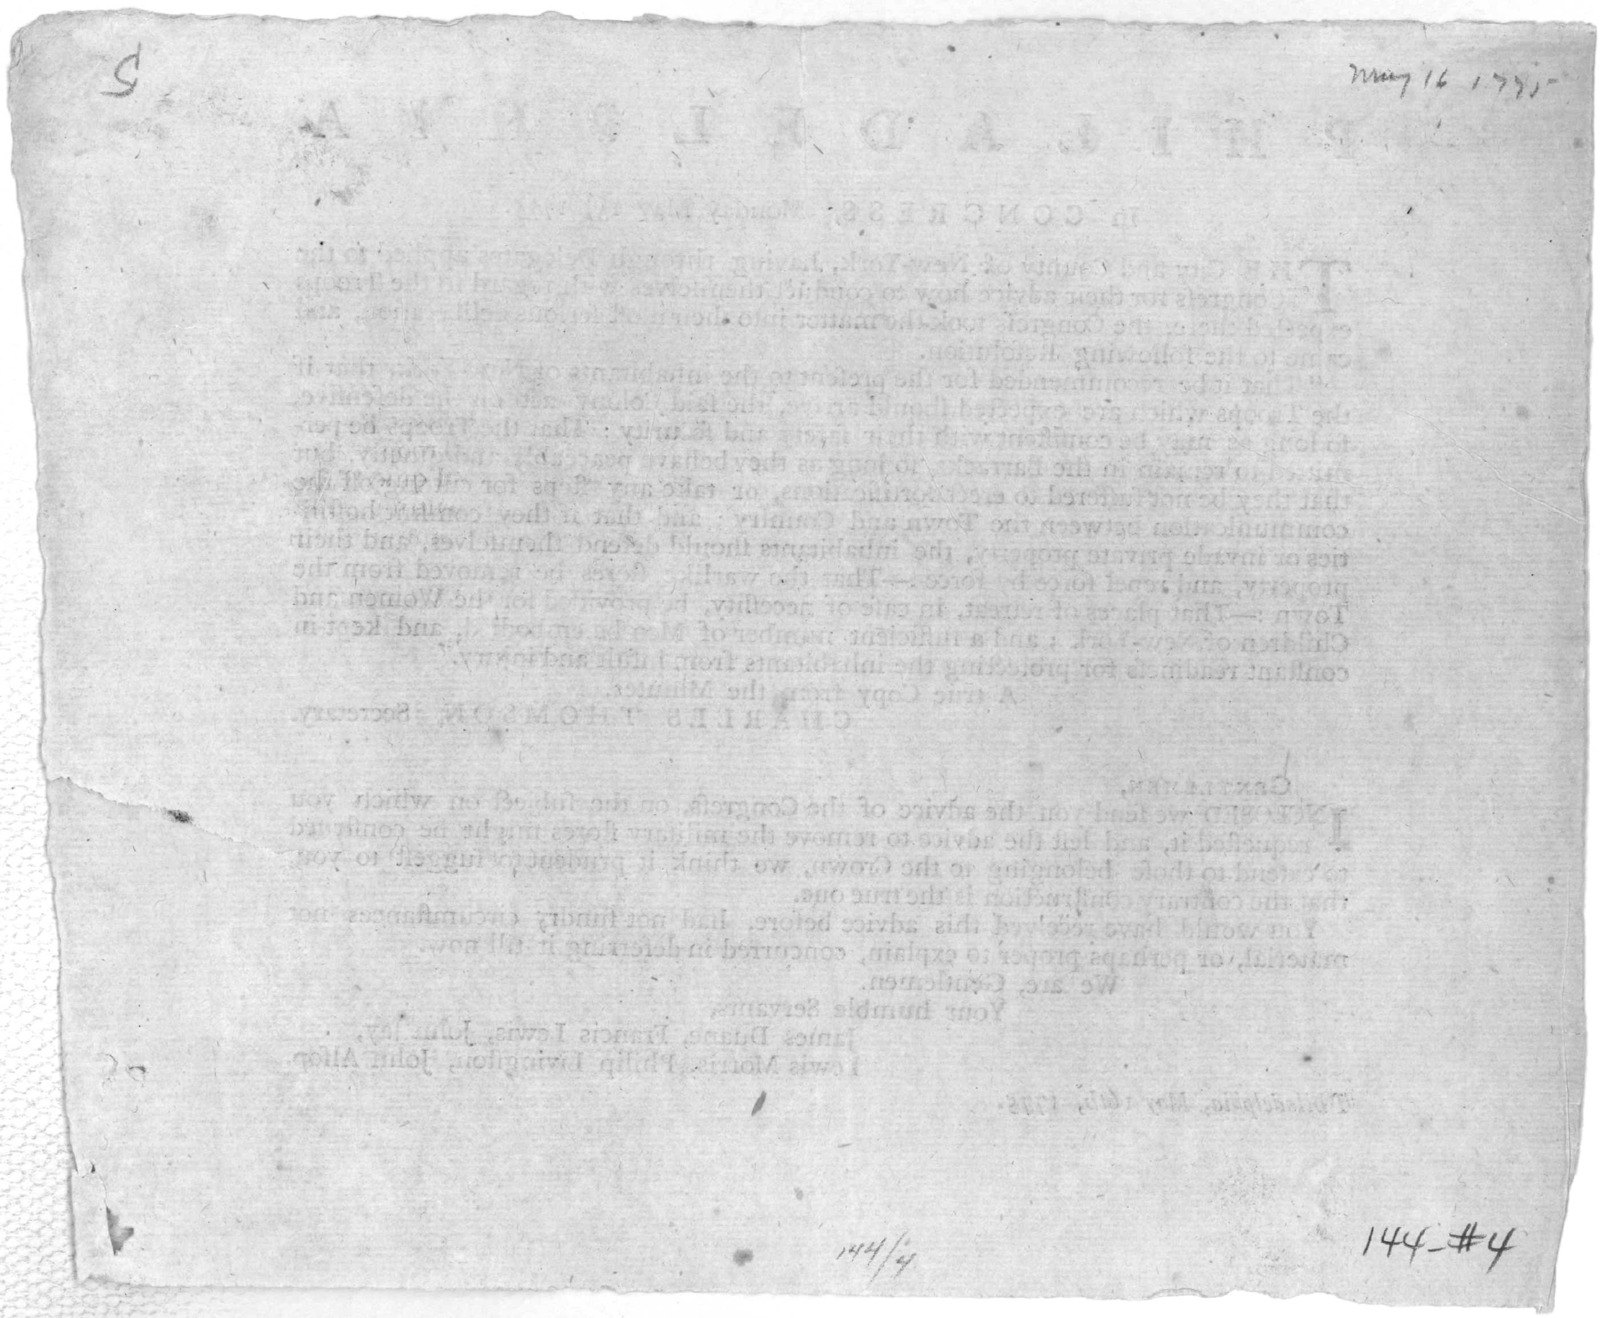 Philadelphia. In Congress, Monday, May 15, 1775. The City and County of New-York, having through delegates applied to the Congress for their advice ... [To act on the defensive when troops arrive] [Signed] Charles Thomson, Secretary. [And transm